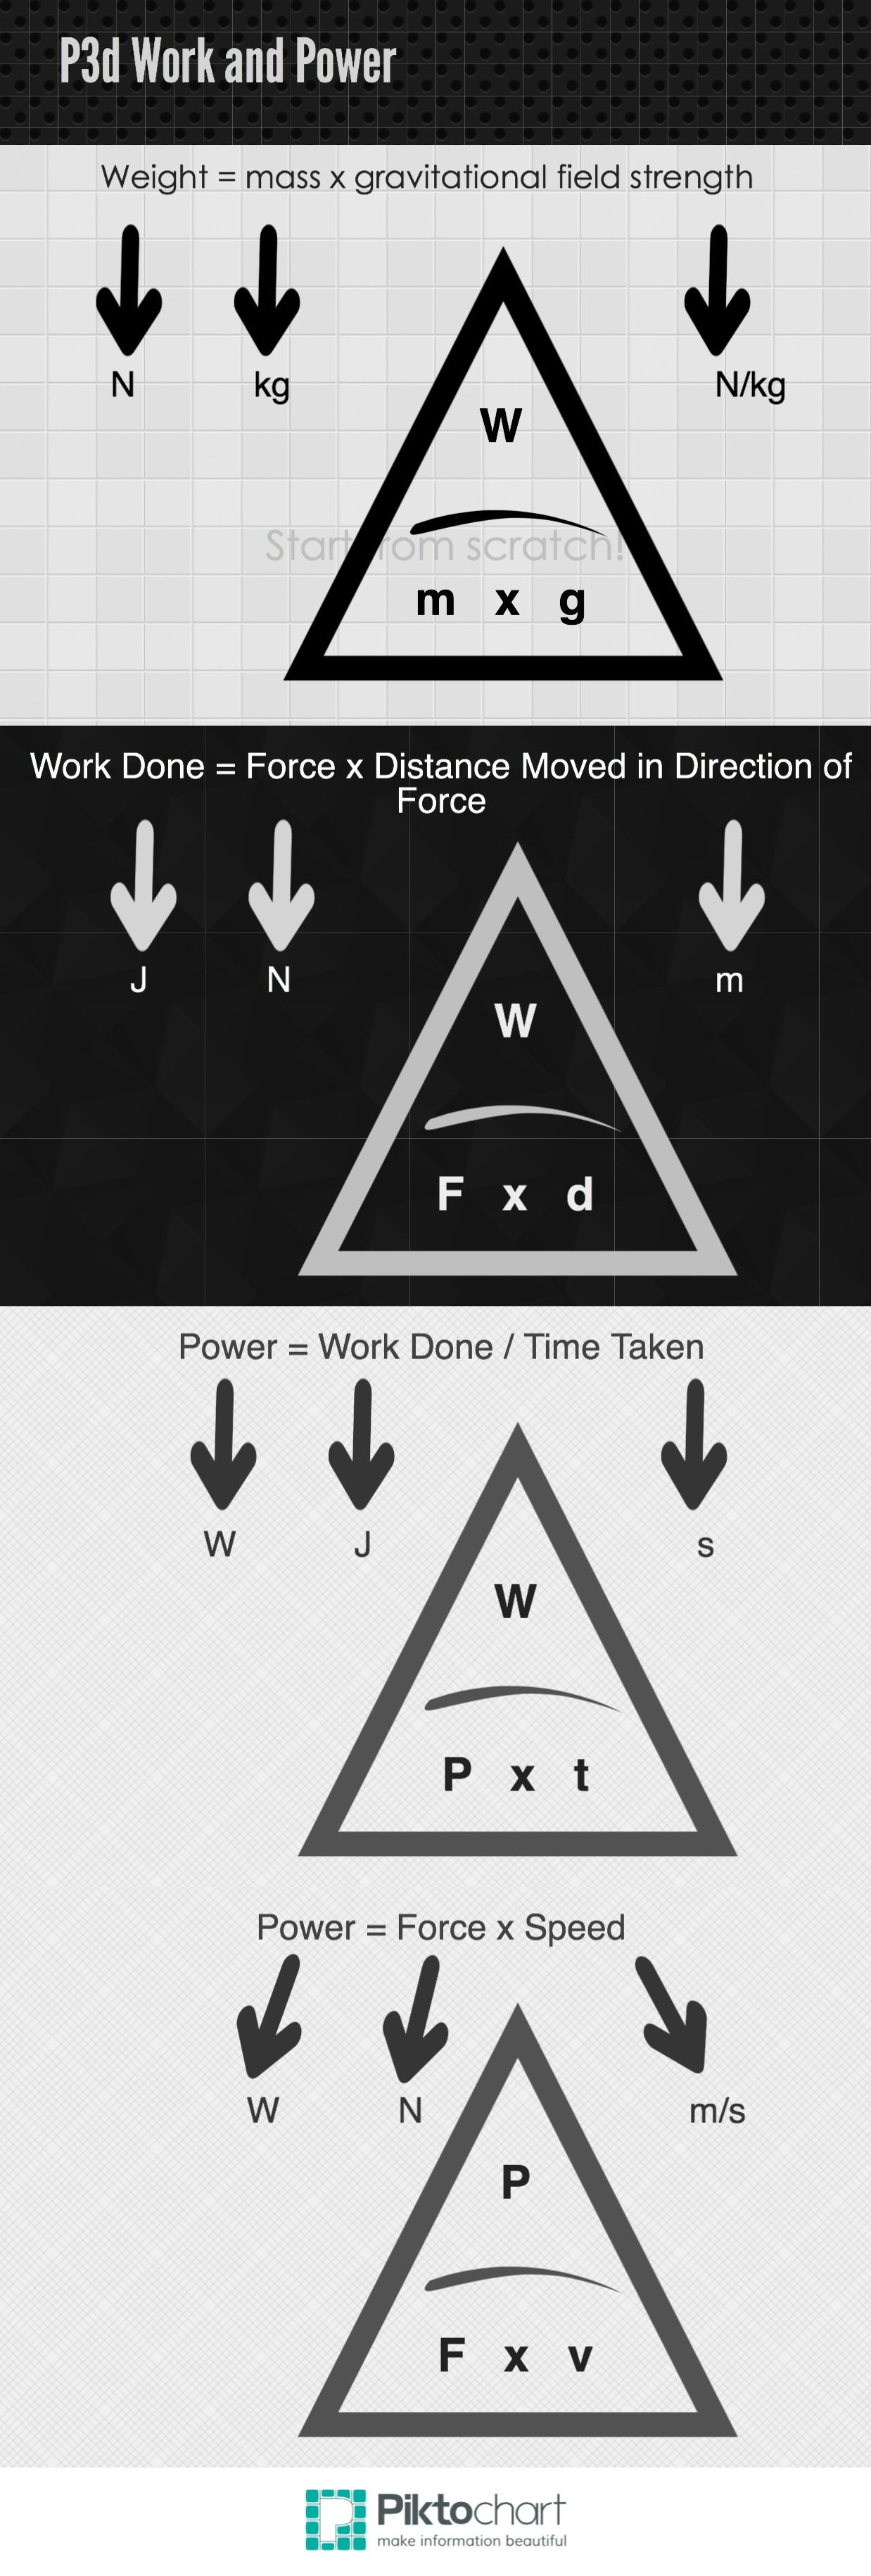 Infographic Quickly Made By Me About The Equations